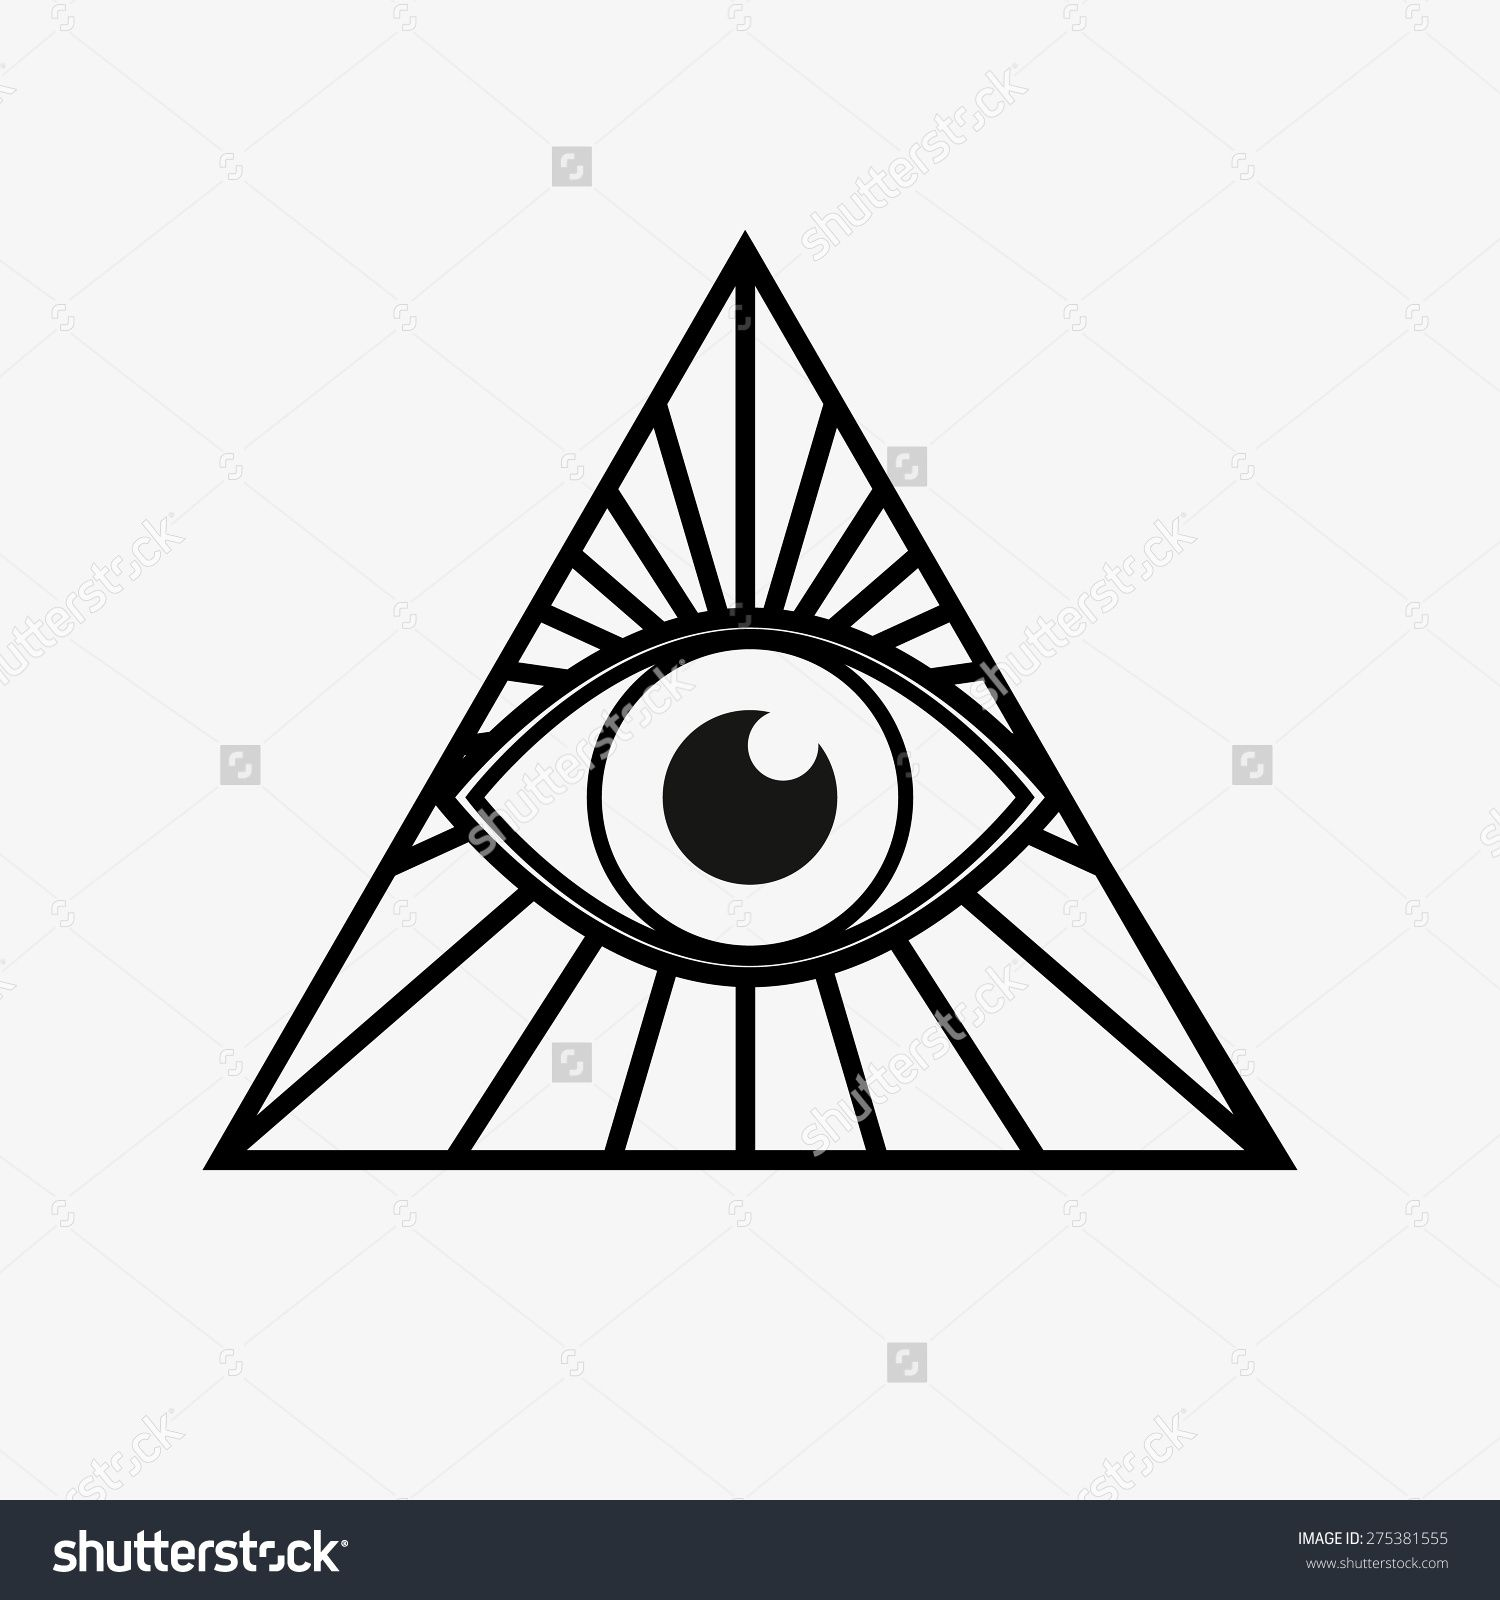 All Seeing Eye Pyramid Tattoo